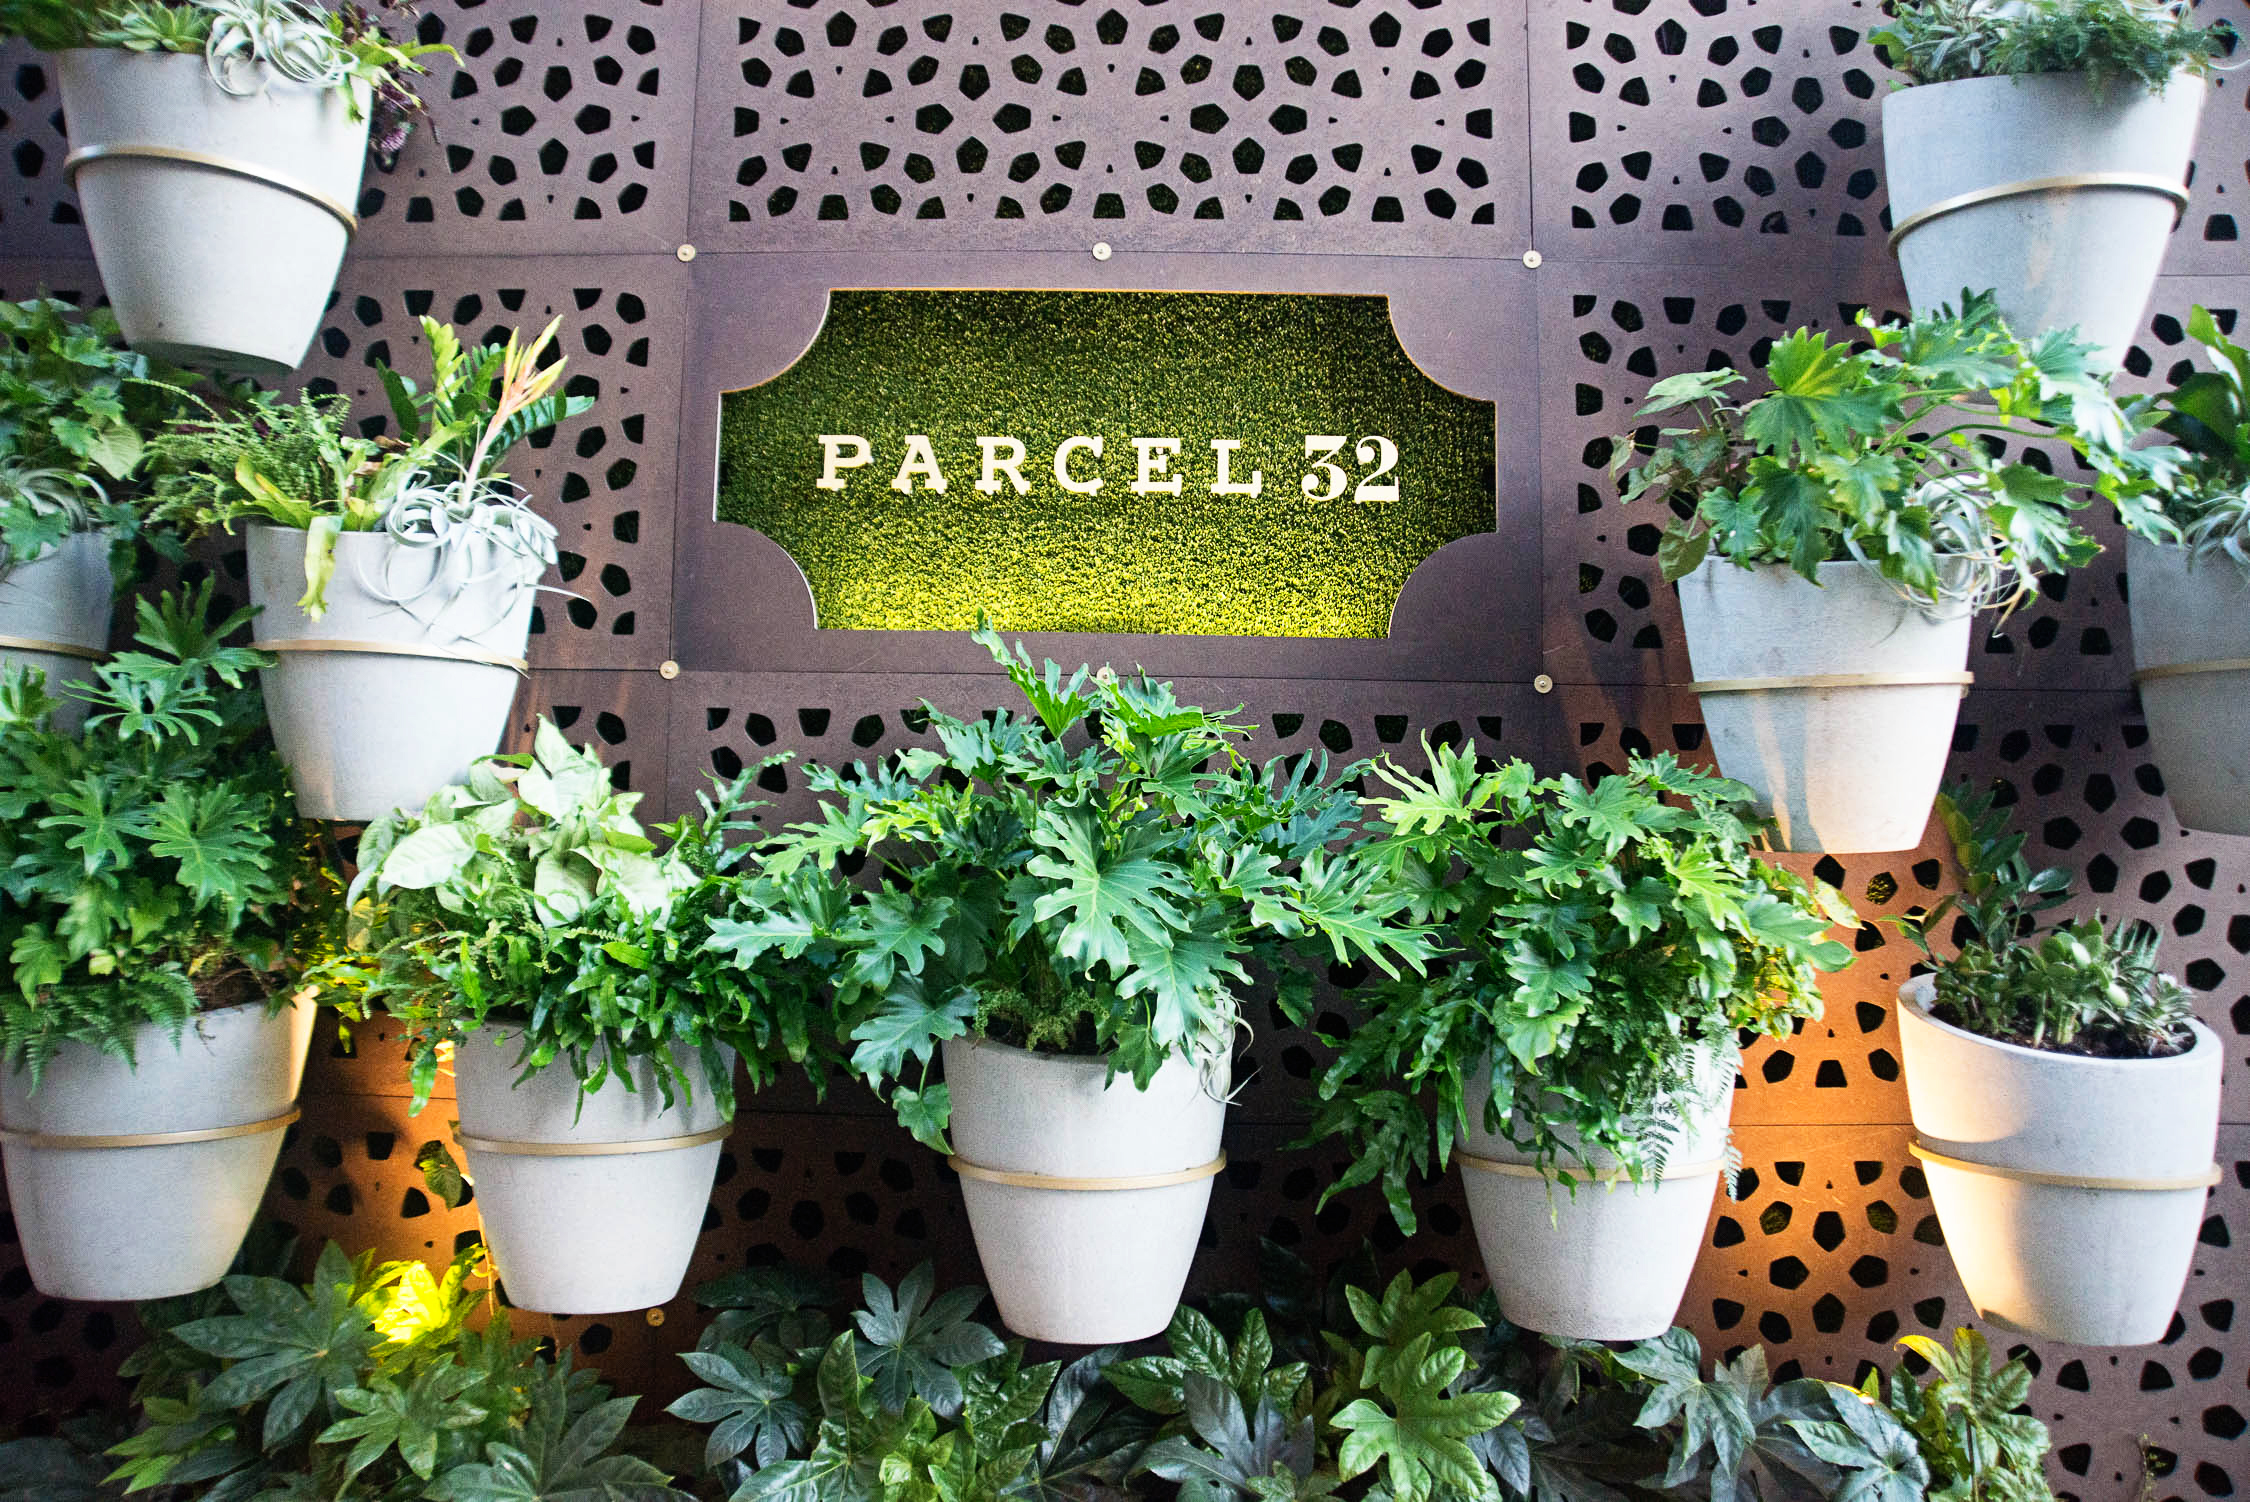 I Love That For You - Parcel 32 Green Wall